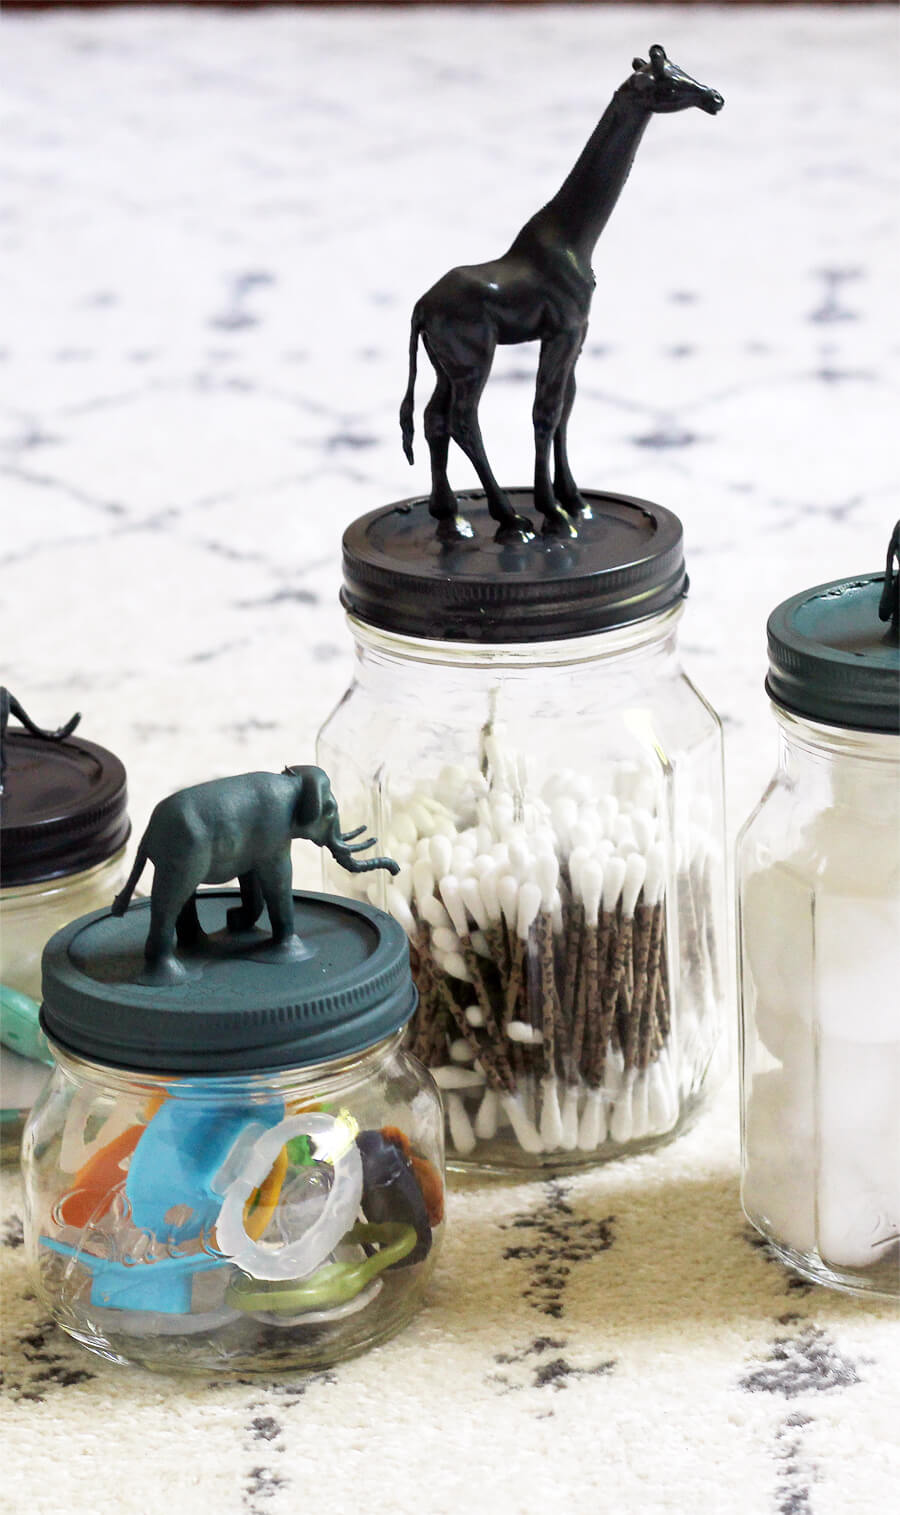 Need a cute and affordable way to add a little pizzazz to your baby's nursery on a budget?? These Safari Animal Mason jars are cute and functional.   #masonjars #safarianimals #babynurseryideas